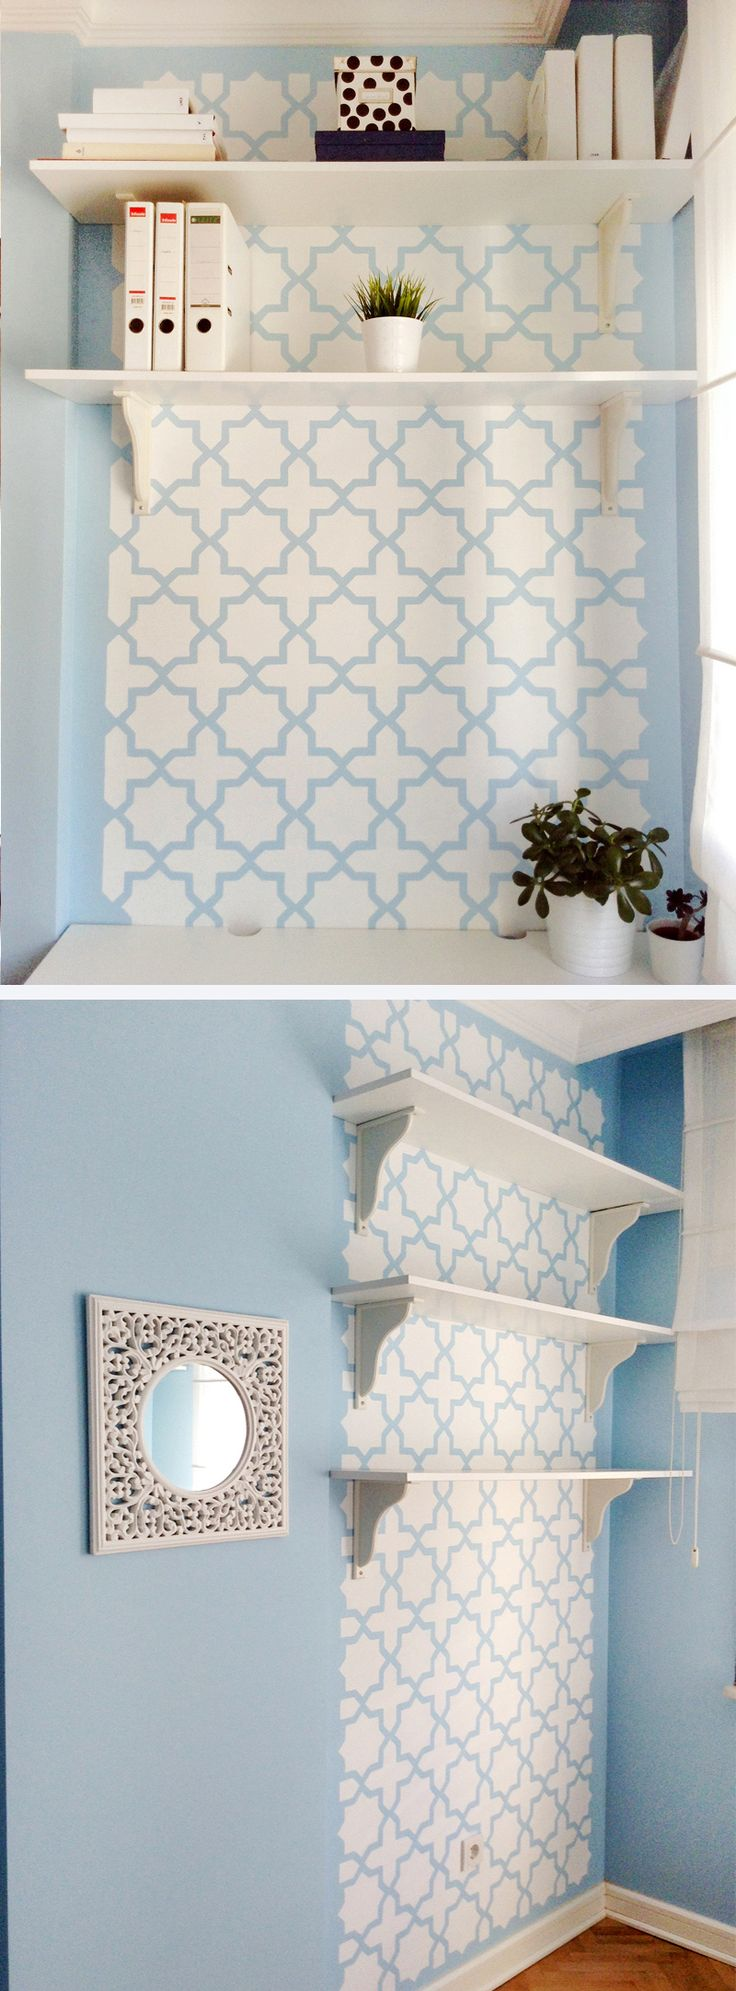 94 best wall stencils images on pinterest wall stenciling moroccan wall stencil with scandinavain colors so fresh little office space amipublicfo Image collections